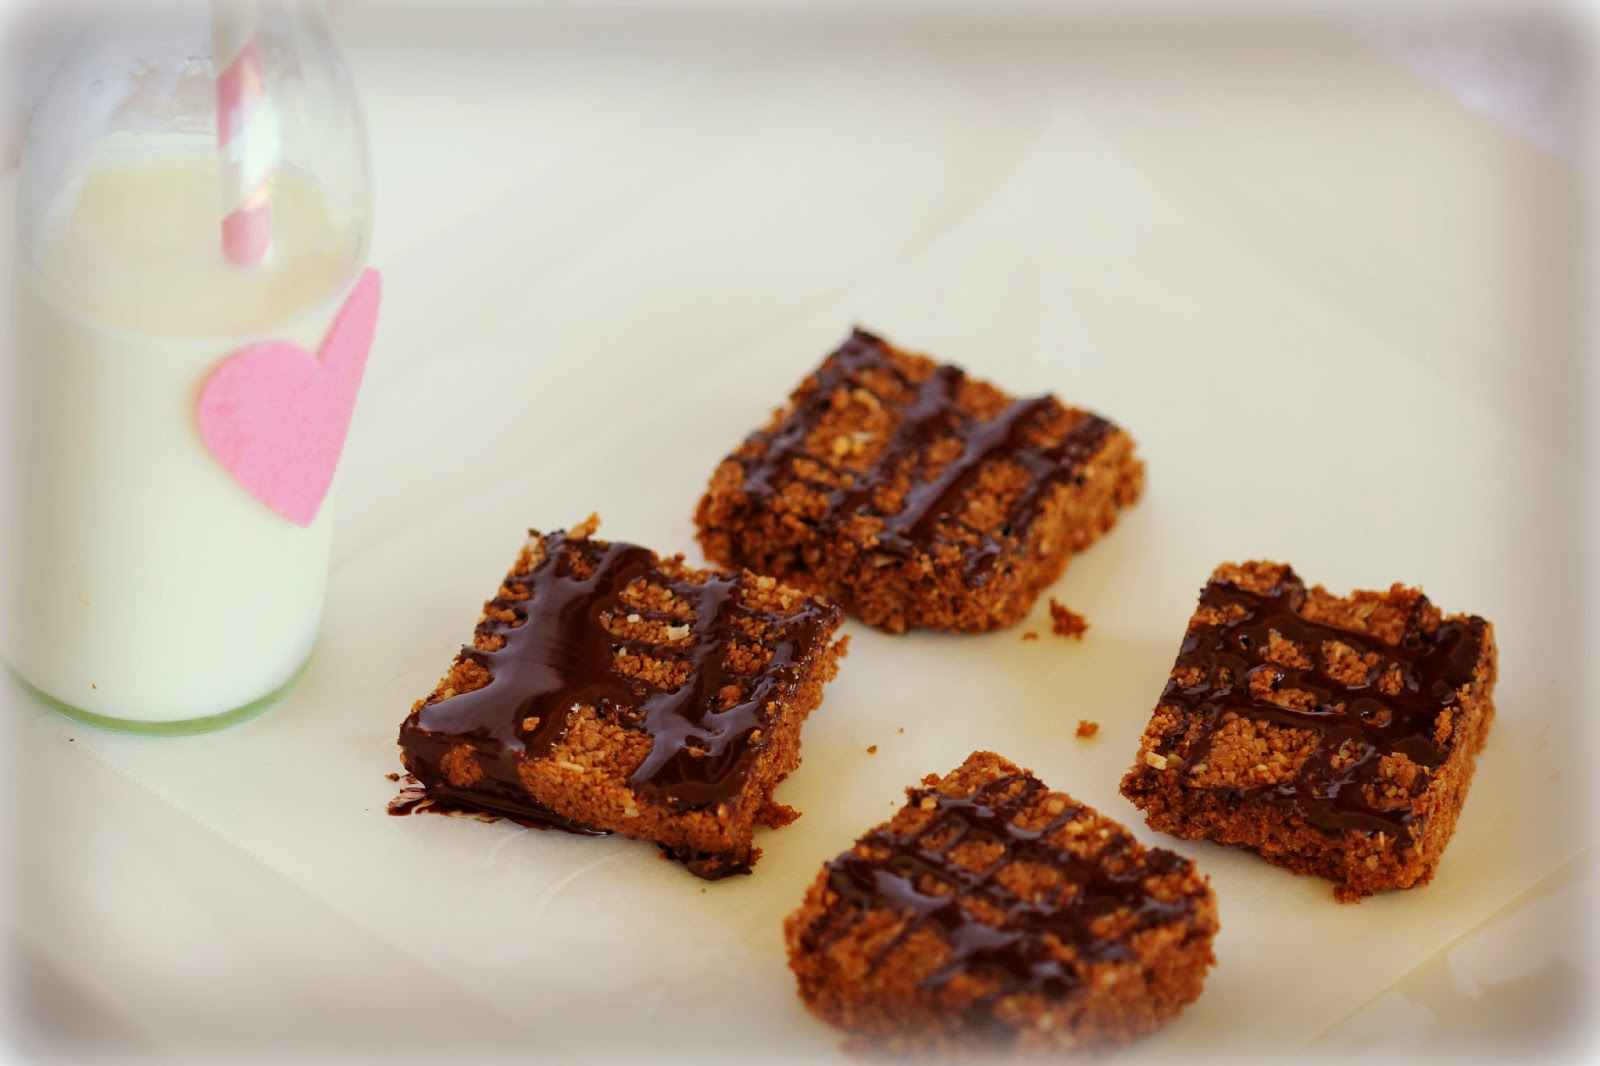 Chocolate, weetbix, slice, recipe, thermomix, snack, lunchbox ideas, treat